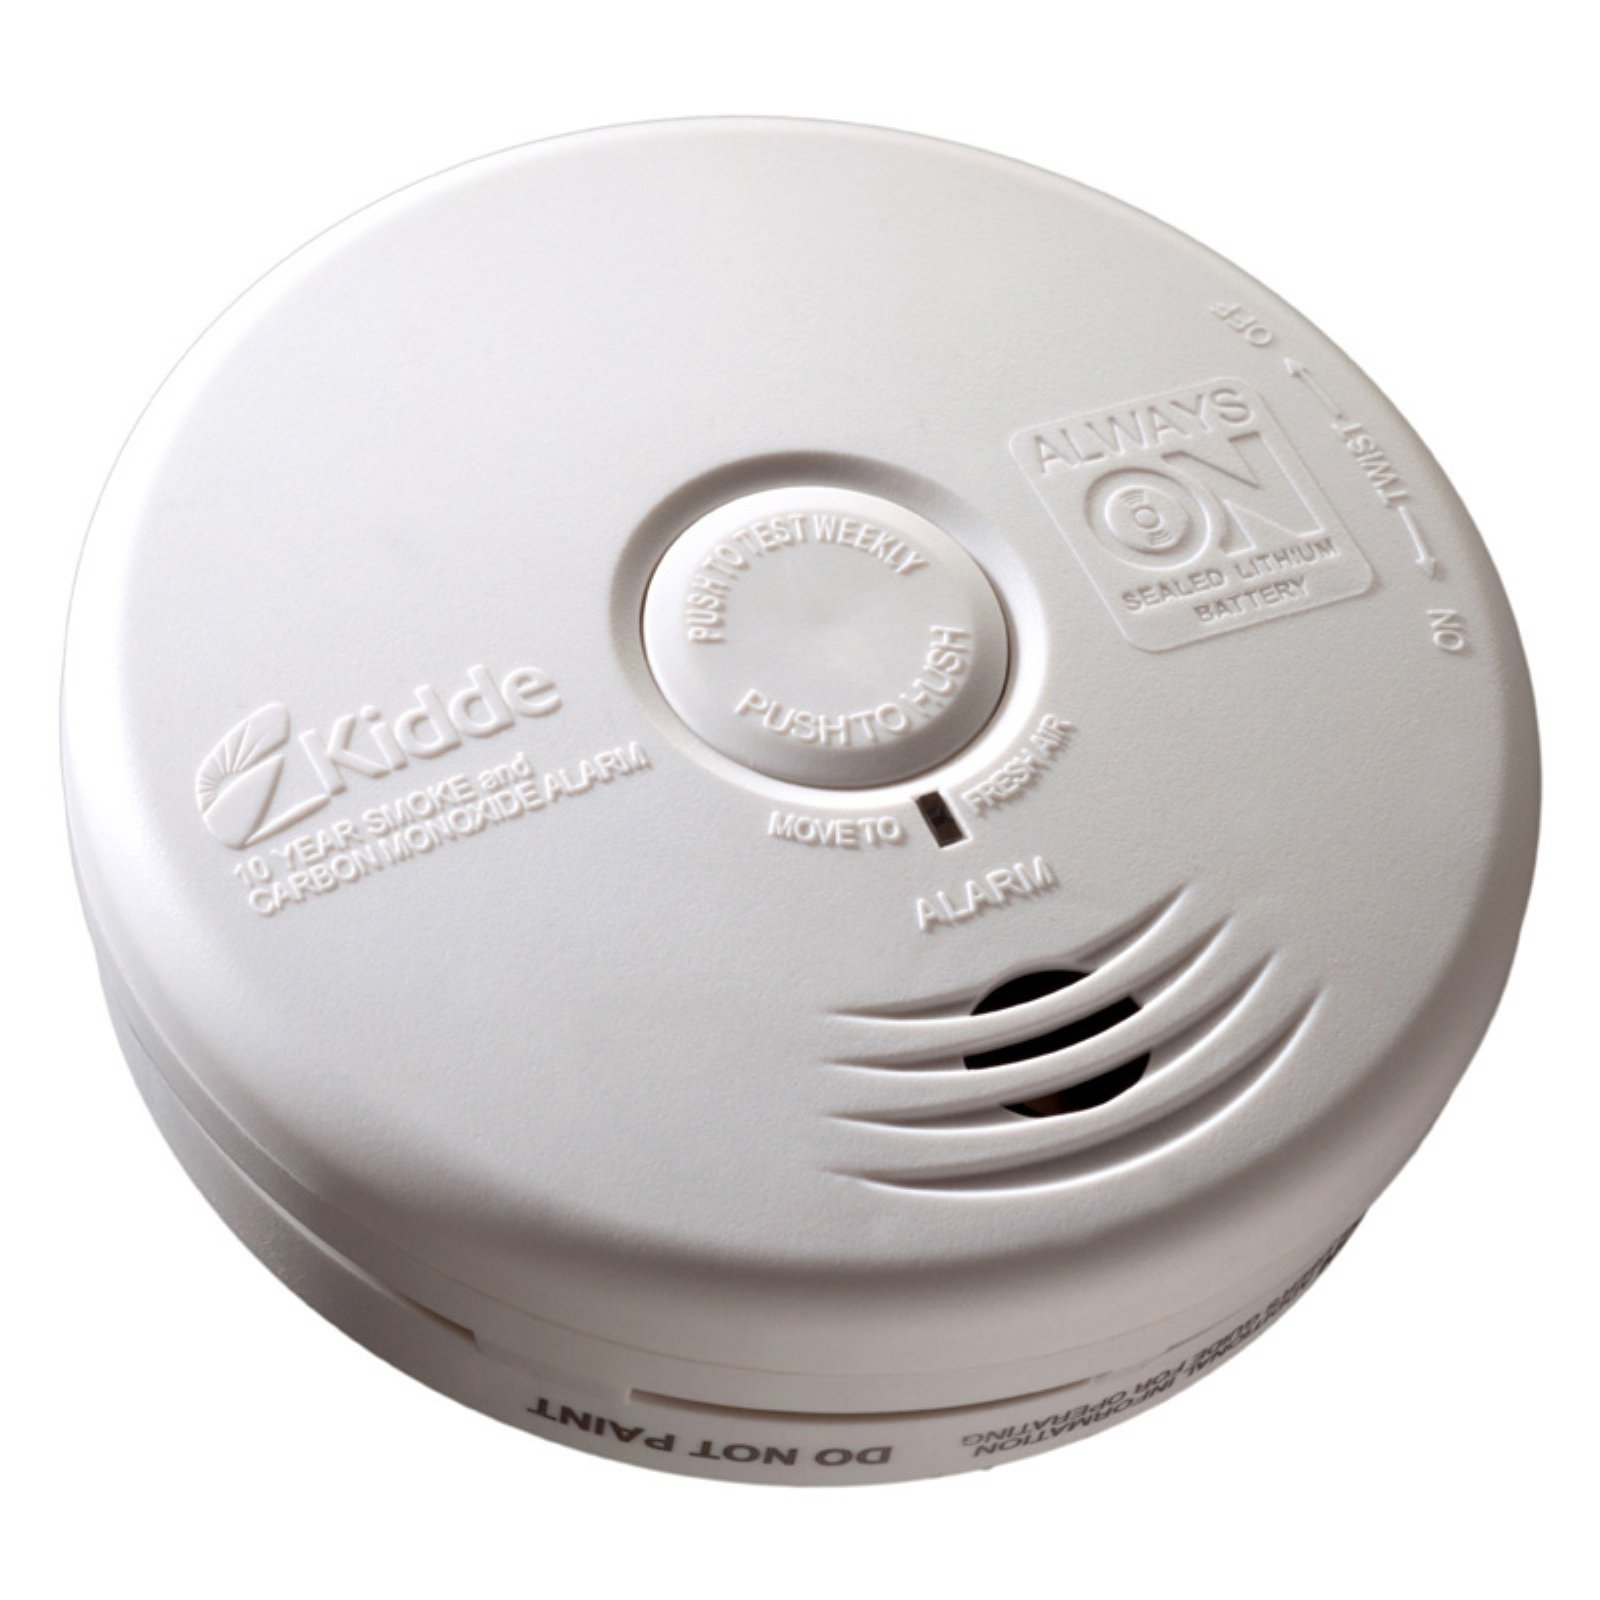 Kidde 21010170 10 Year Kitchen Smoke & Carbon Monoxide Detector